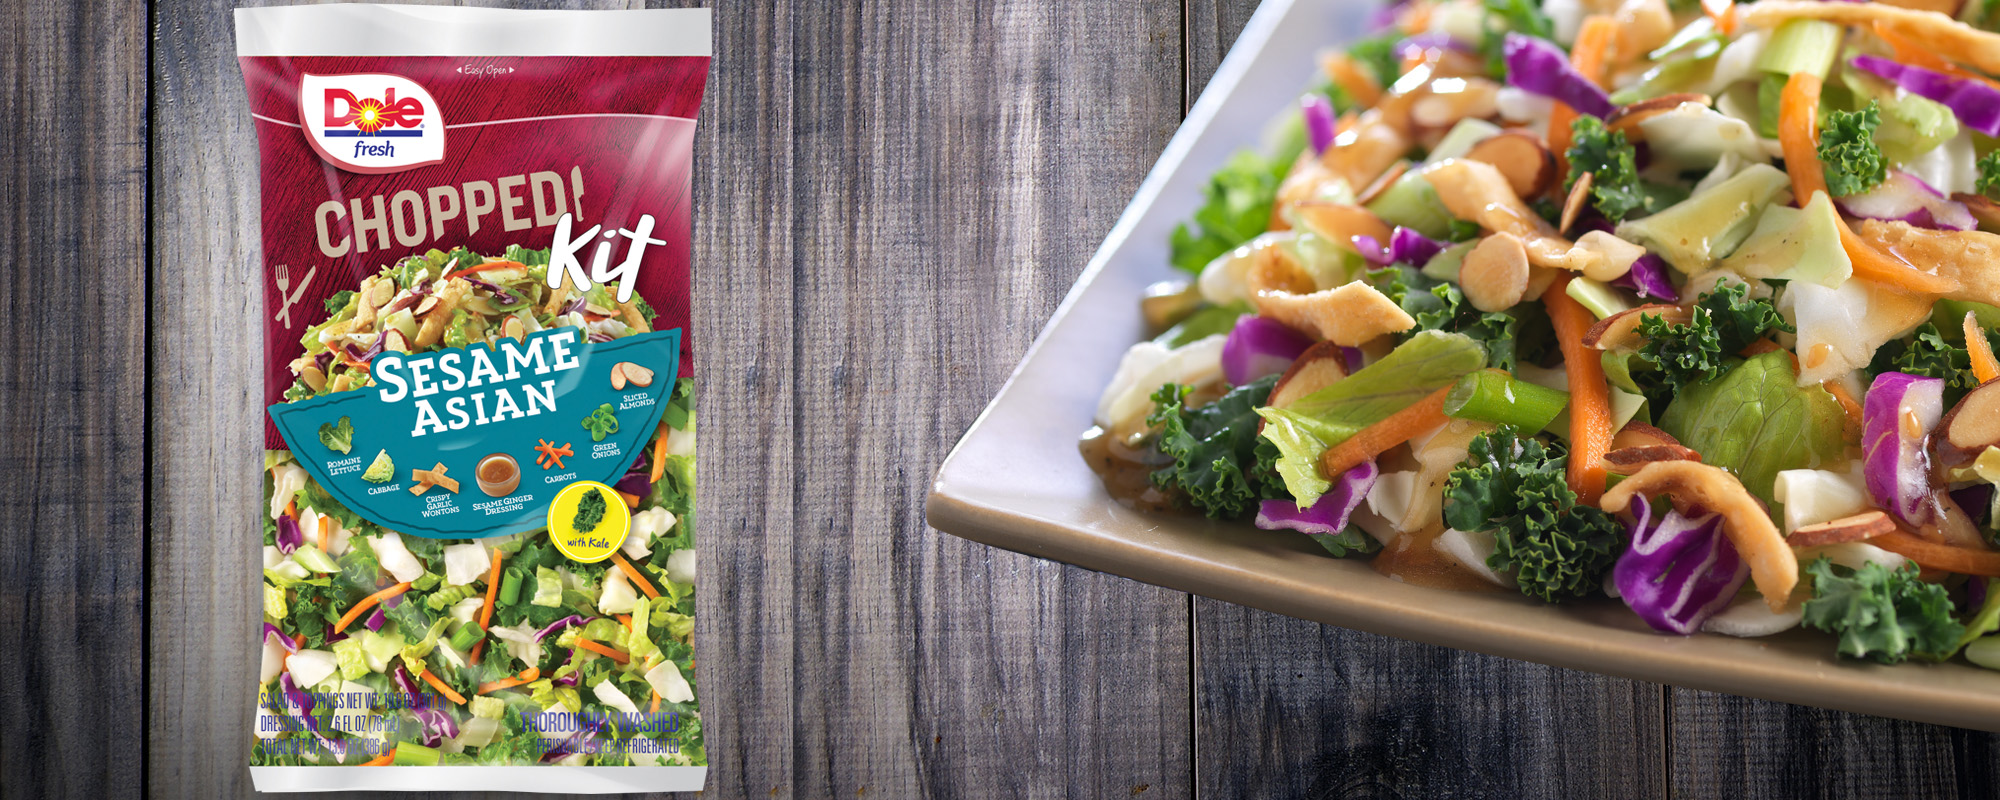 Dole Fresh Chopped Sesame Asian Salad Kit